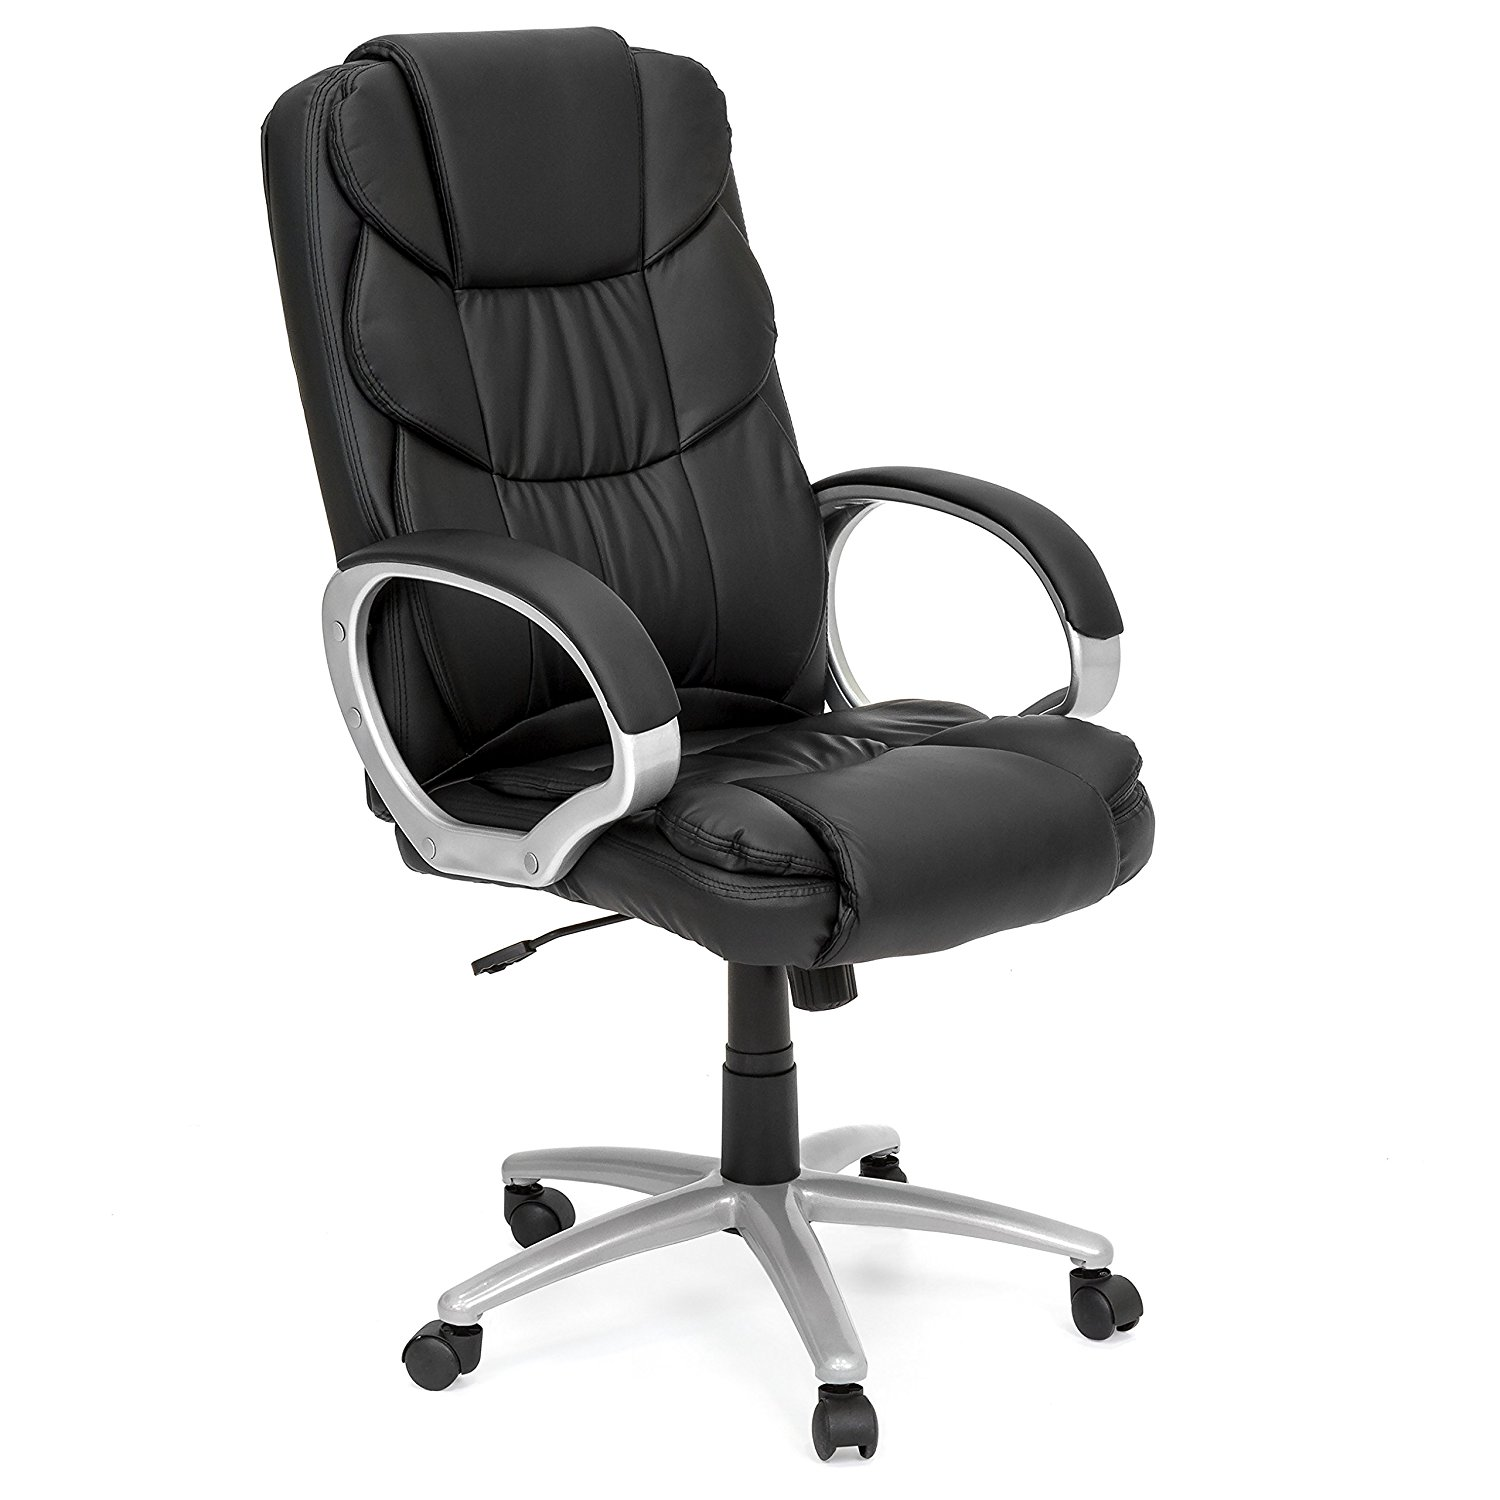 PU Leather Upholstery Ergonomic Office Task Desk Chair, Tall Curved Backrest, Swivel, Height Adjustable Seat, Suitable For Work, Computer Desk, Student, Black Color + Expert Guide